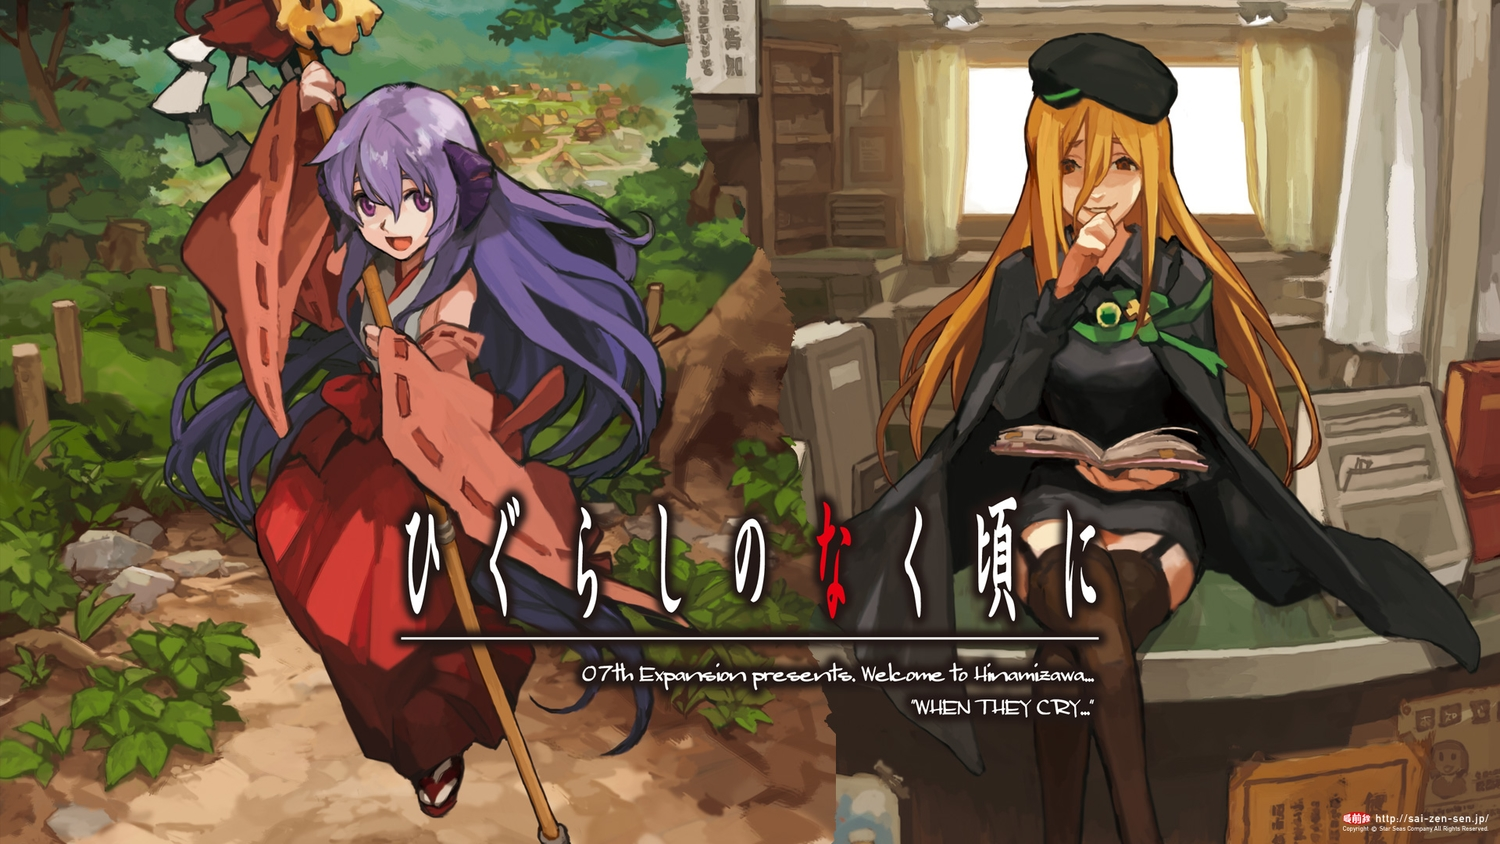 blonde_hair book brown_eyes building grass hanyuu hat higurashi_no_naku_koro_ni horns japanese_clothes kimono long_hair miko purple_eyes purple_hair stockings takano_miyo tomohi tree watermark